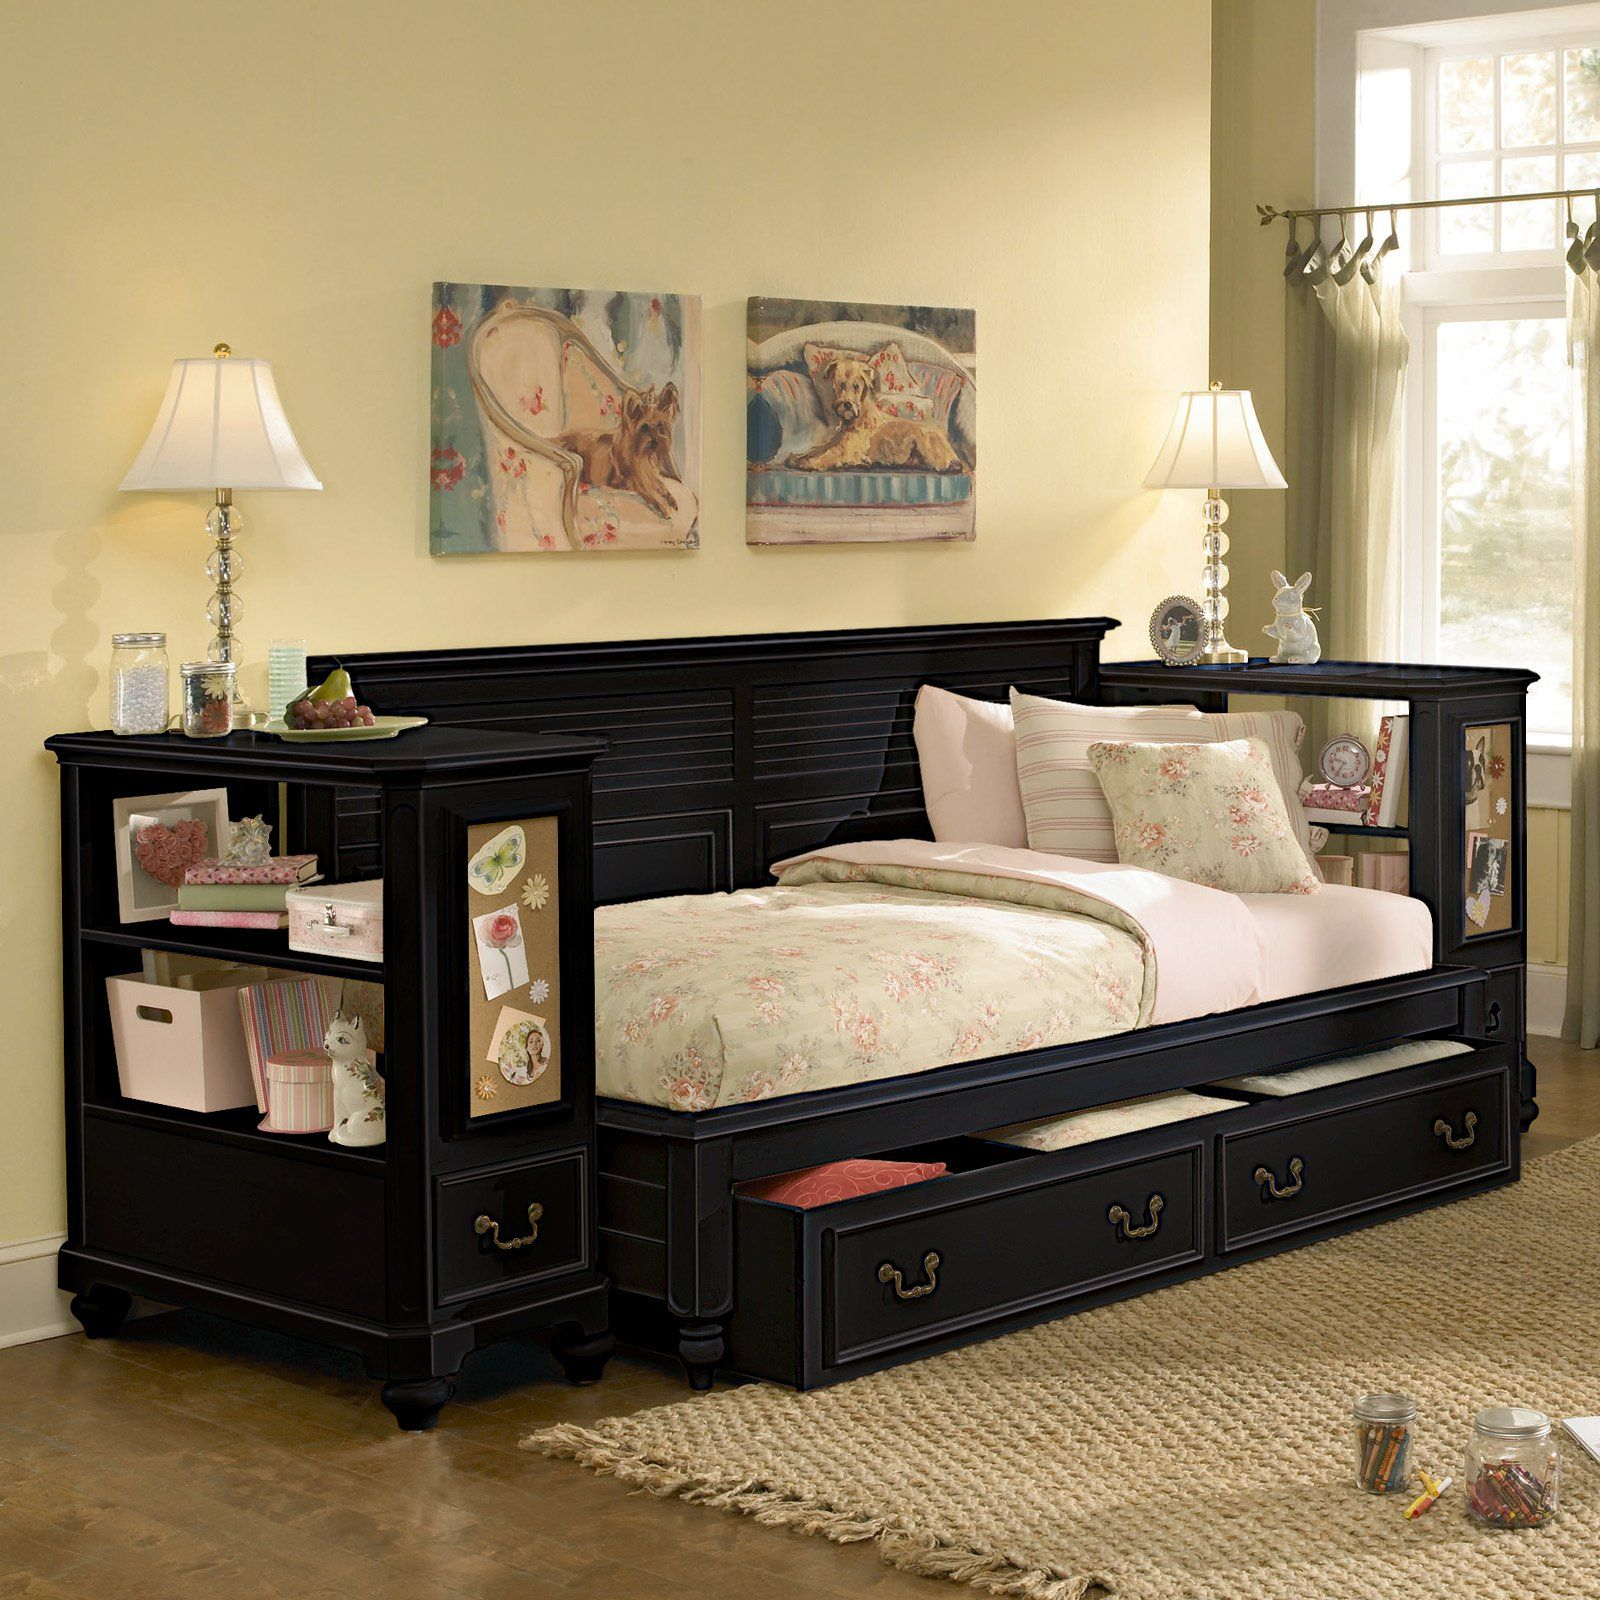 Captivating Full Size Daybed With Trundle For Bedroom Furniture Ideas Black DaybedUnder